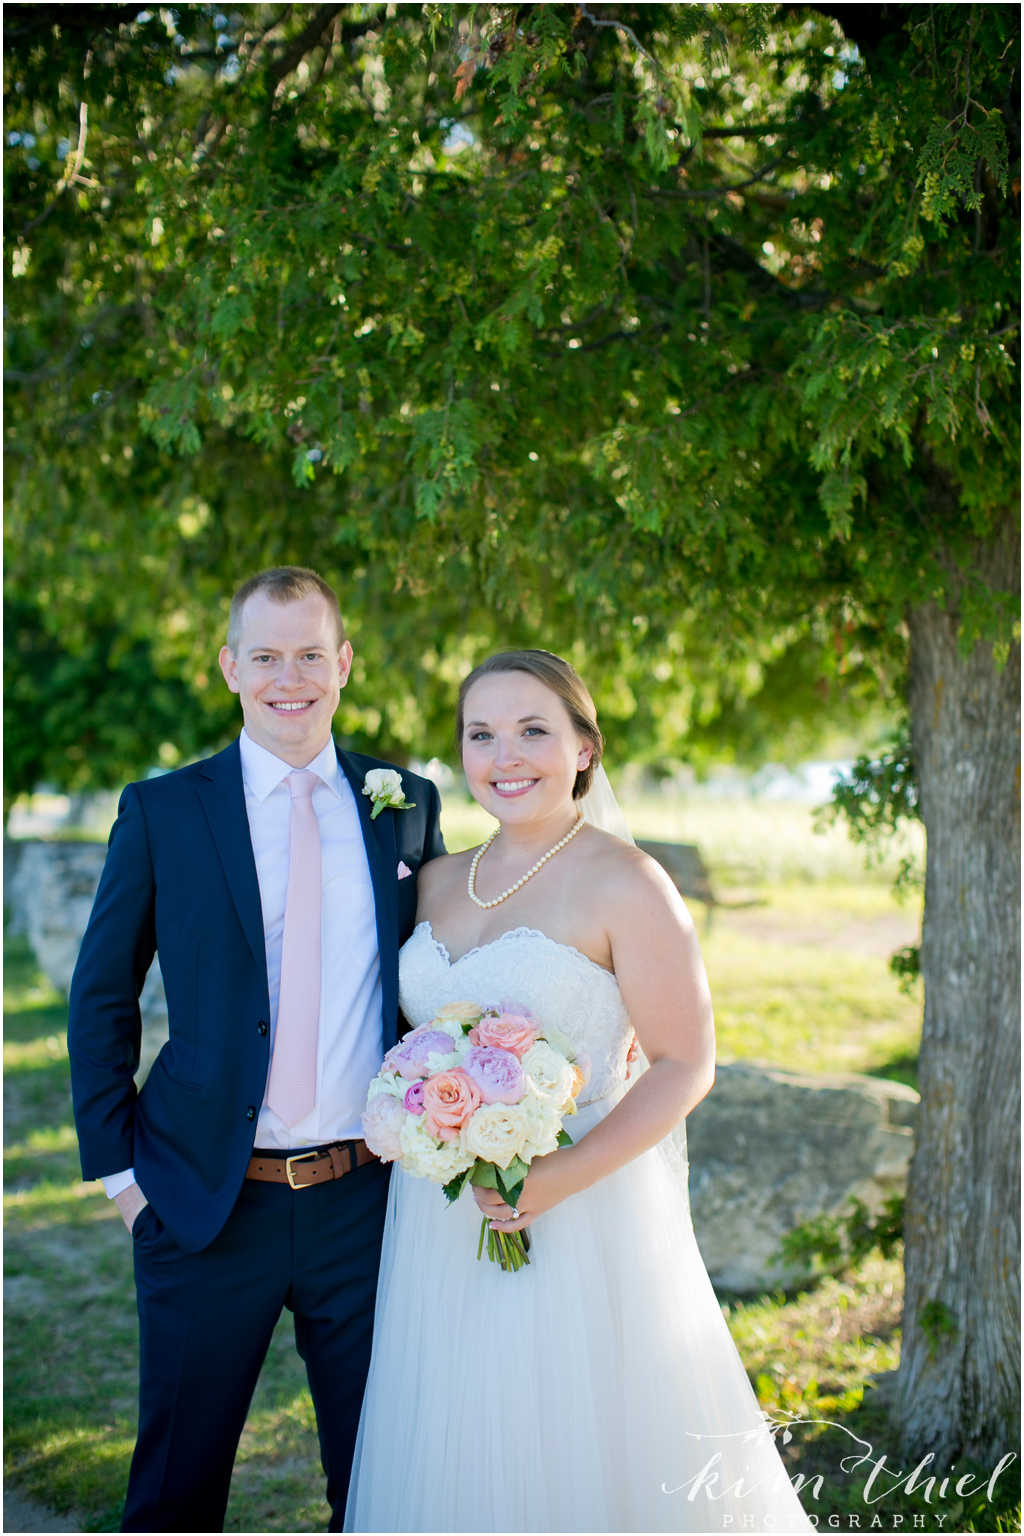 Kim-Thiel-Photography-Horseshoe-Bay-Wedding-5, Horseshoe Bay Wedding